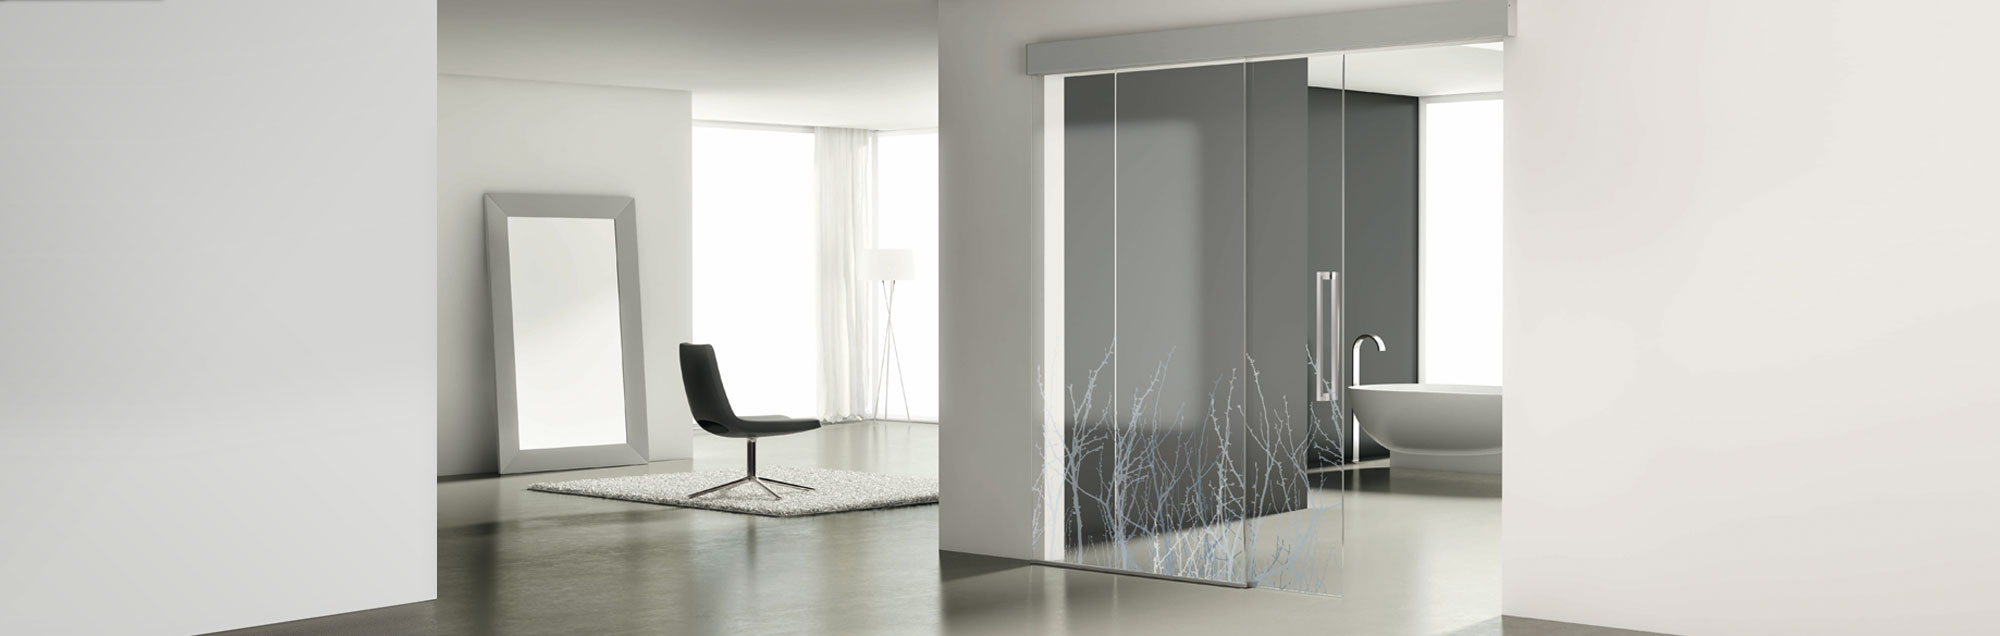 Luxor Collection of made to measure interior sliding glass doors by PROFILTEK